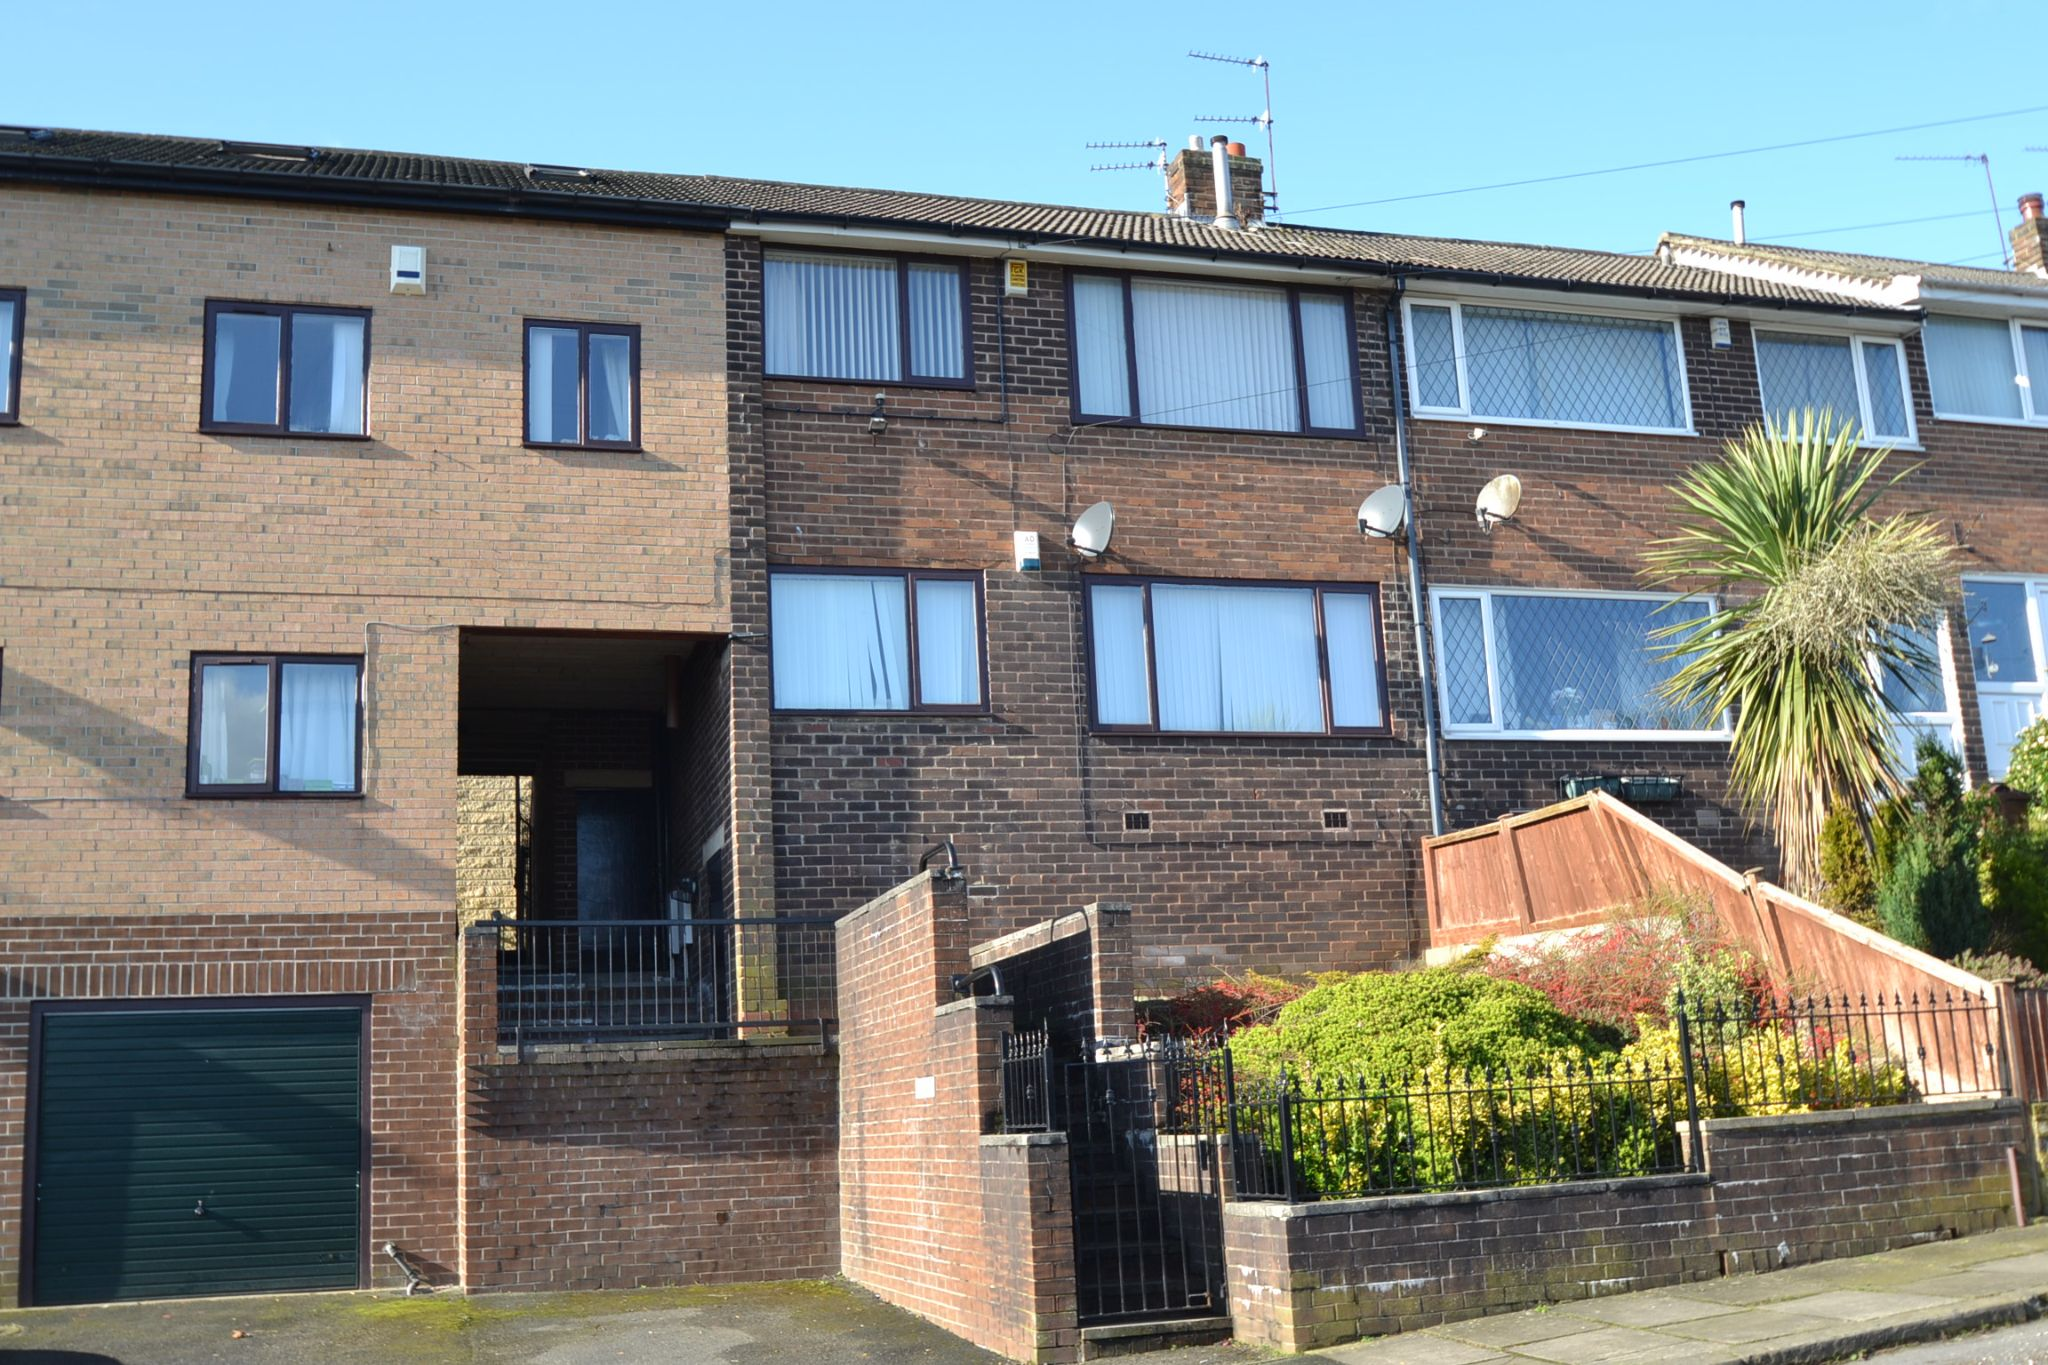 2 Bedroom Ground Floor Flat/apartment For Sale - Photograph 9